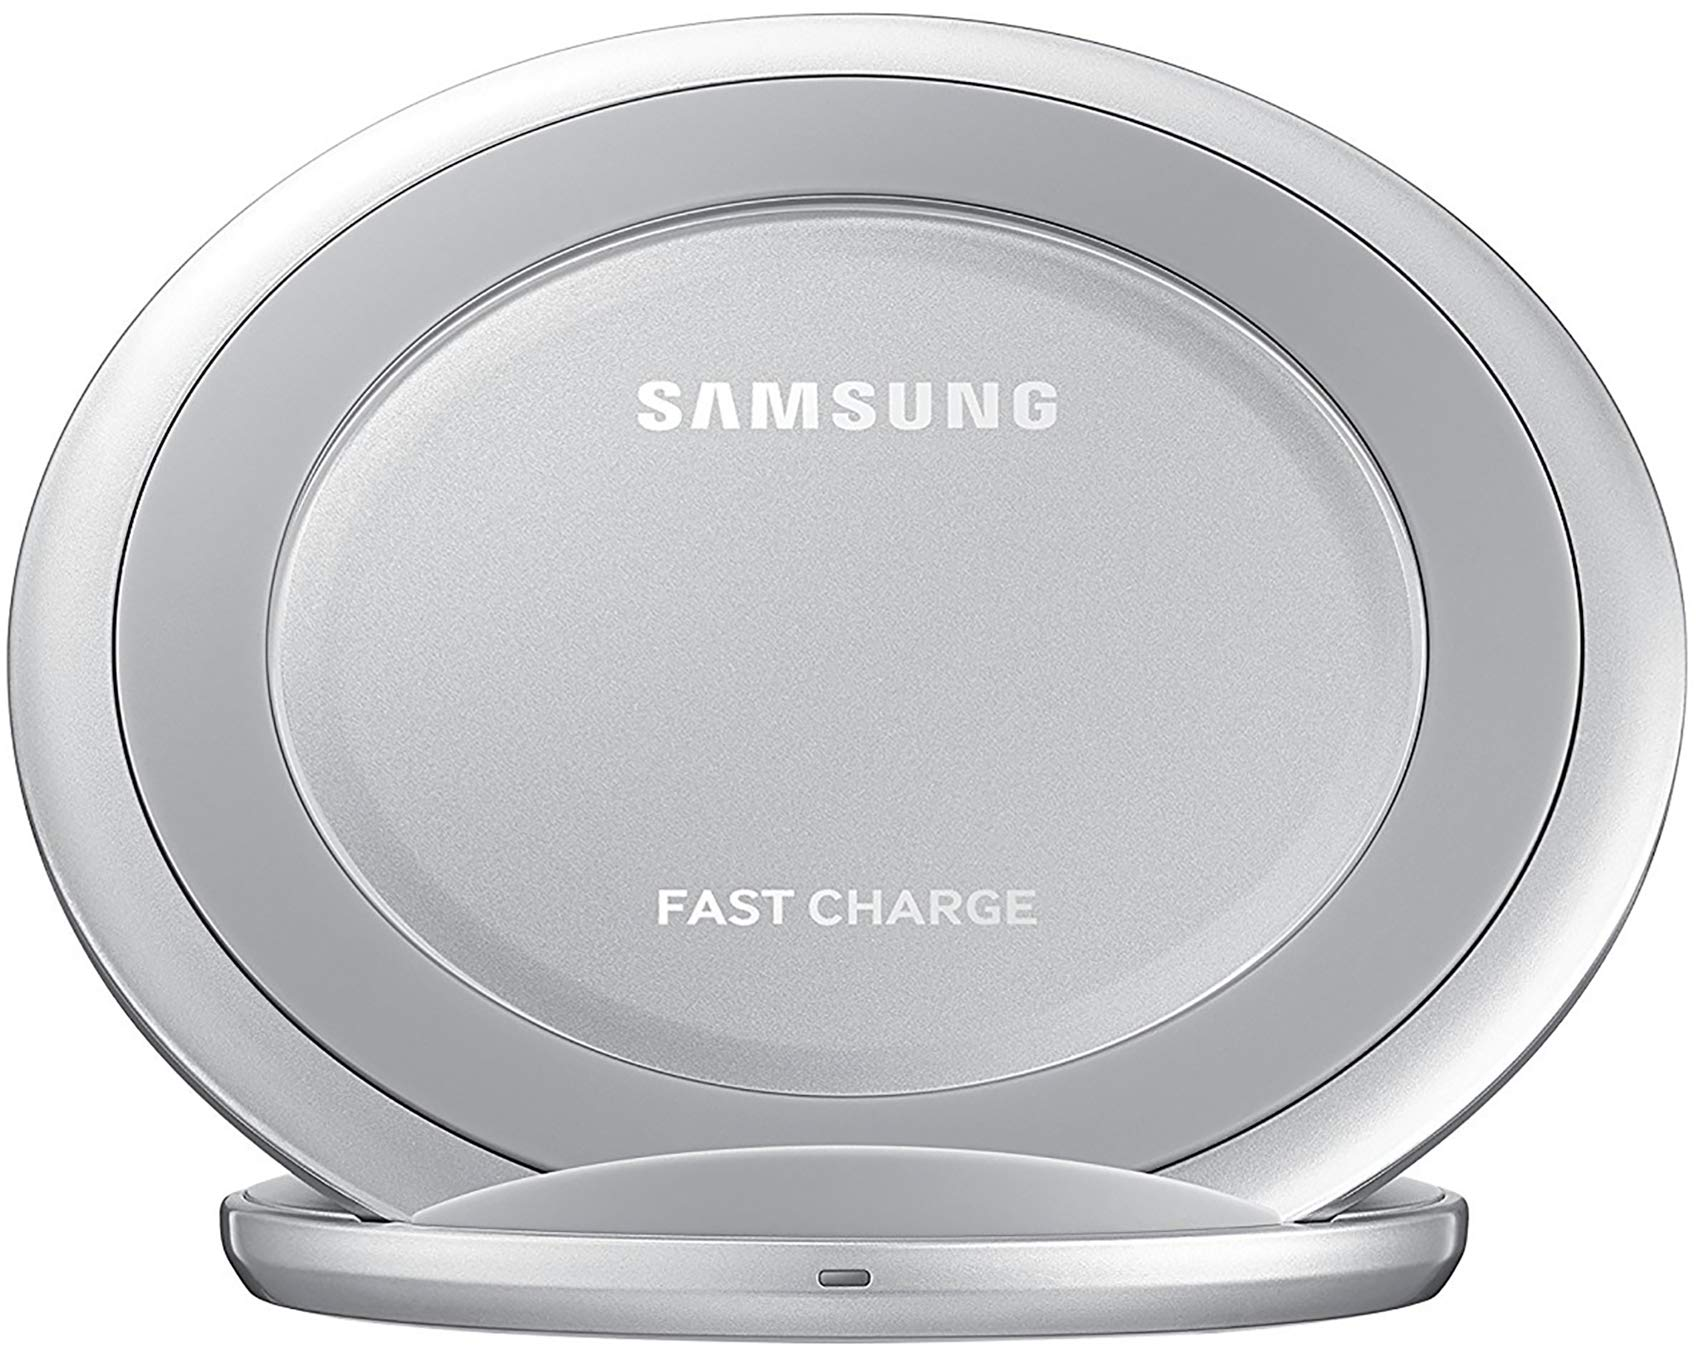 Samsung Qi Certified Fast Charge Wireless Charging Pad + Stand - Supports wireless charging on Qi compatible smartphones - Silver by Samsung